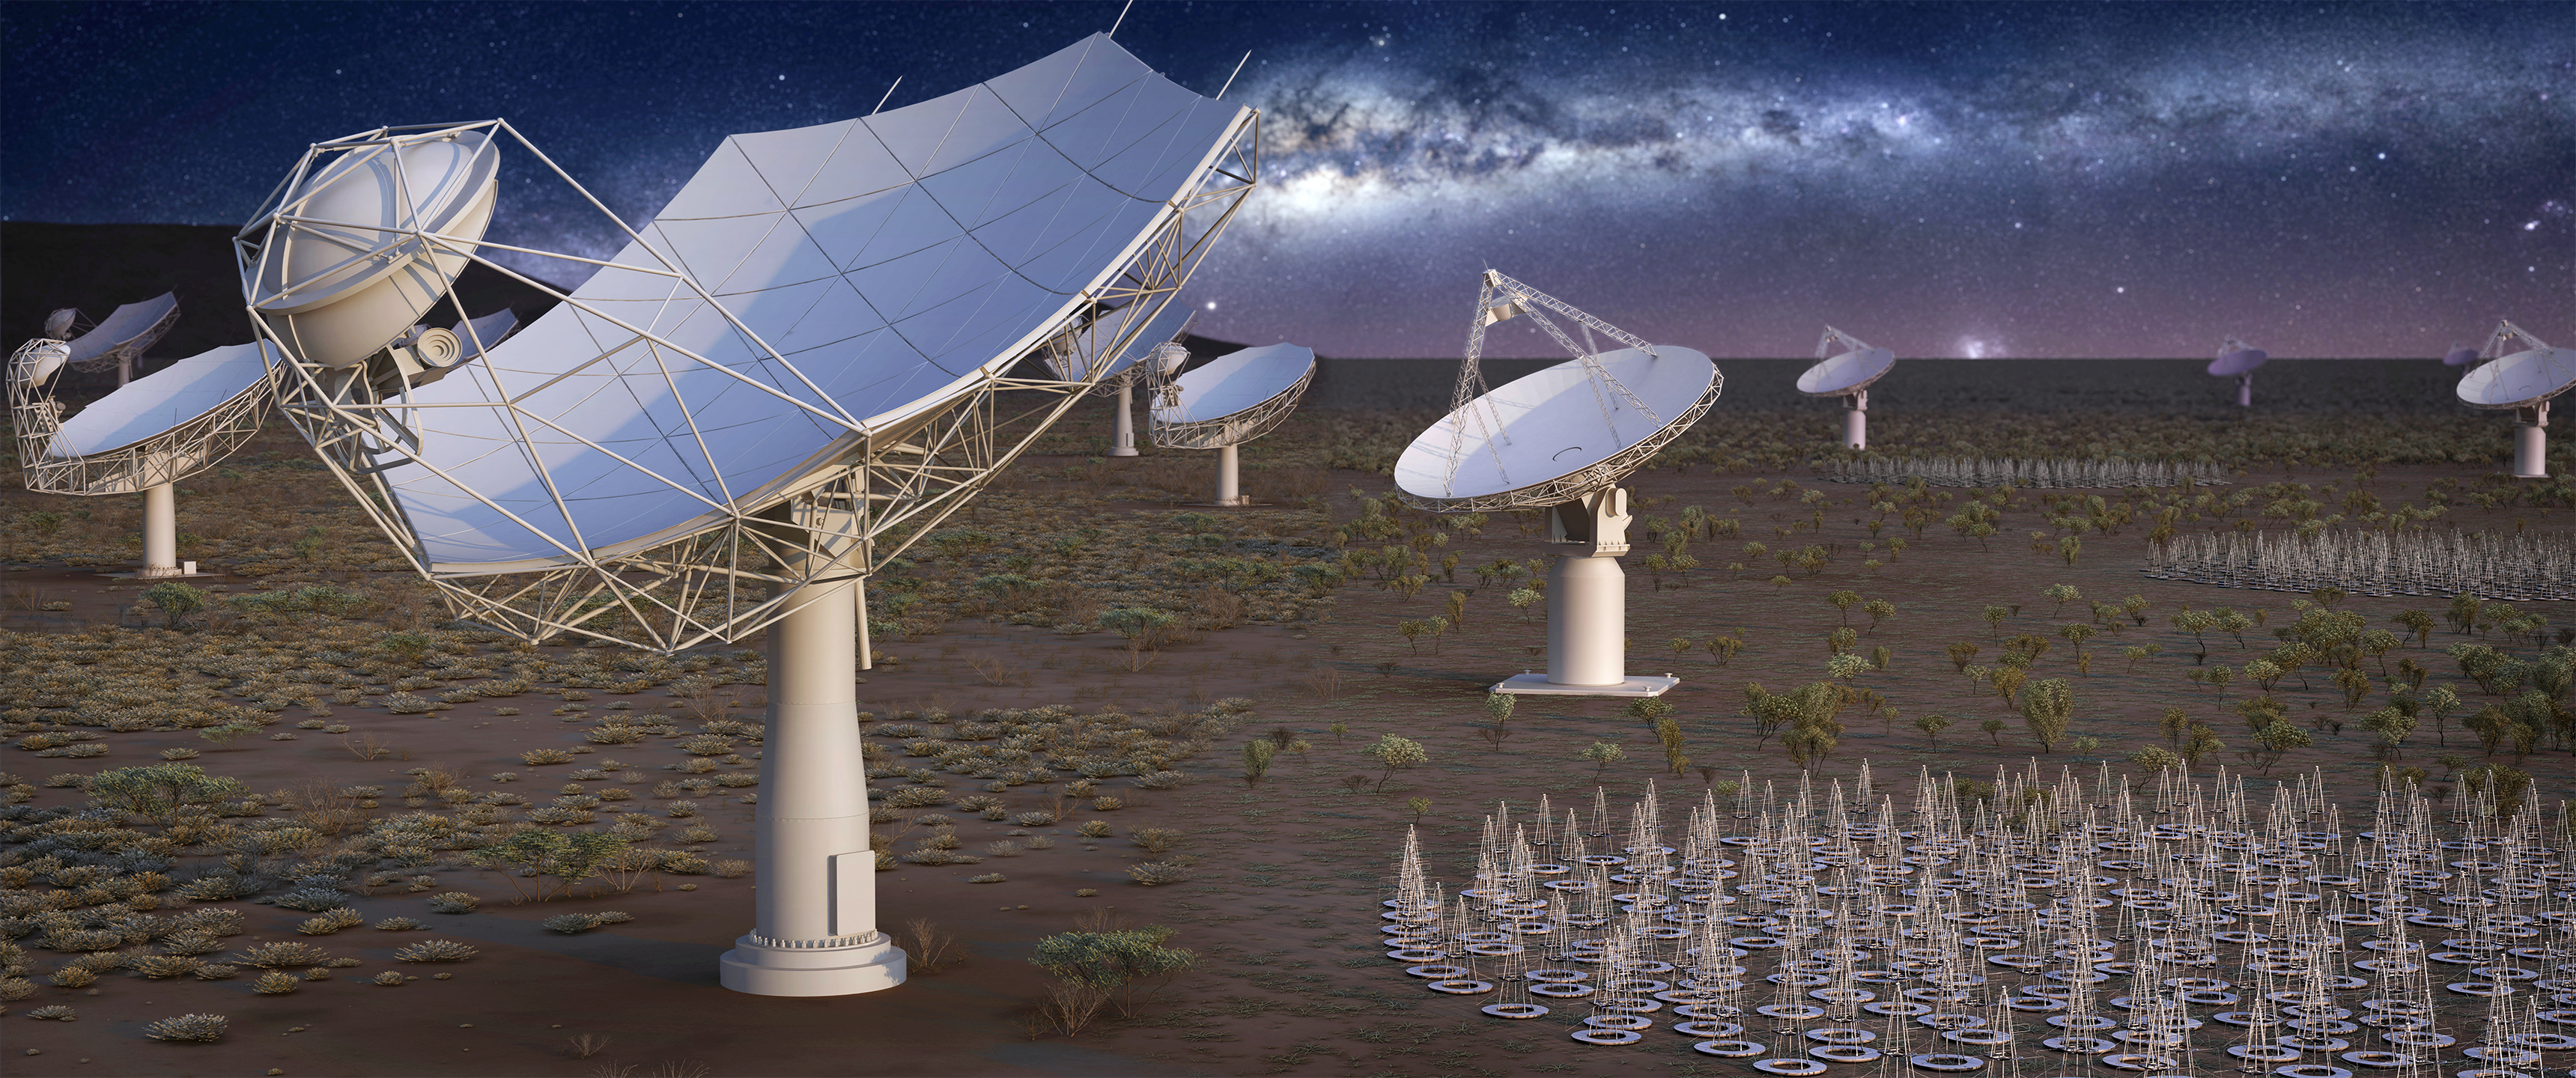 Artist's composition of the entire SKA1 array, with SKA dishes and MeerKAT dishes in Africa and low frequency